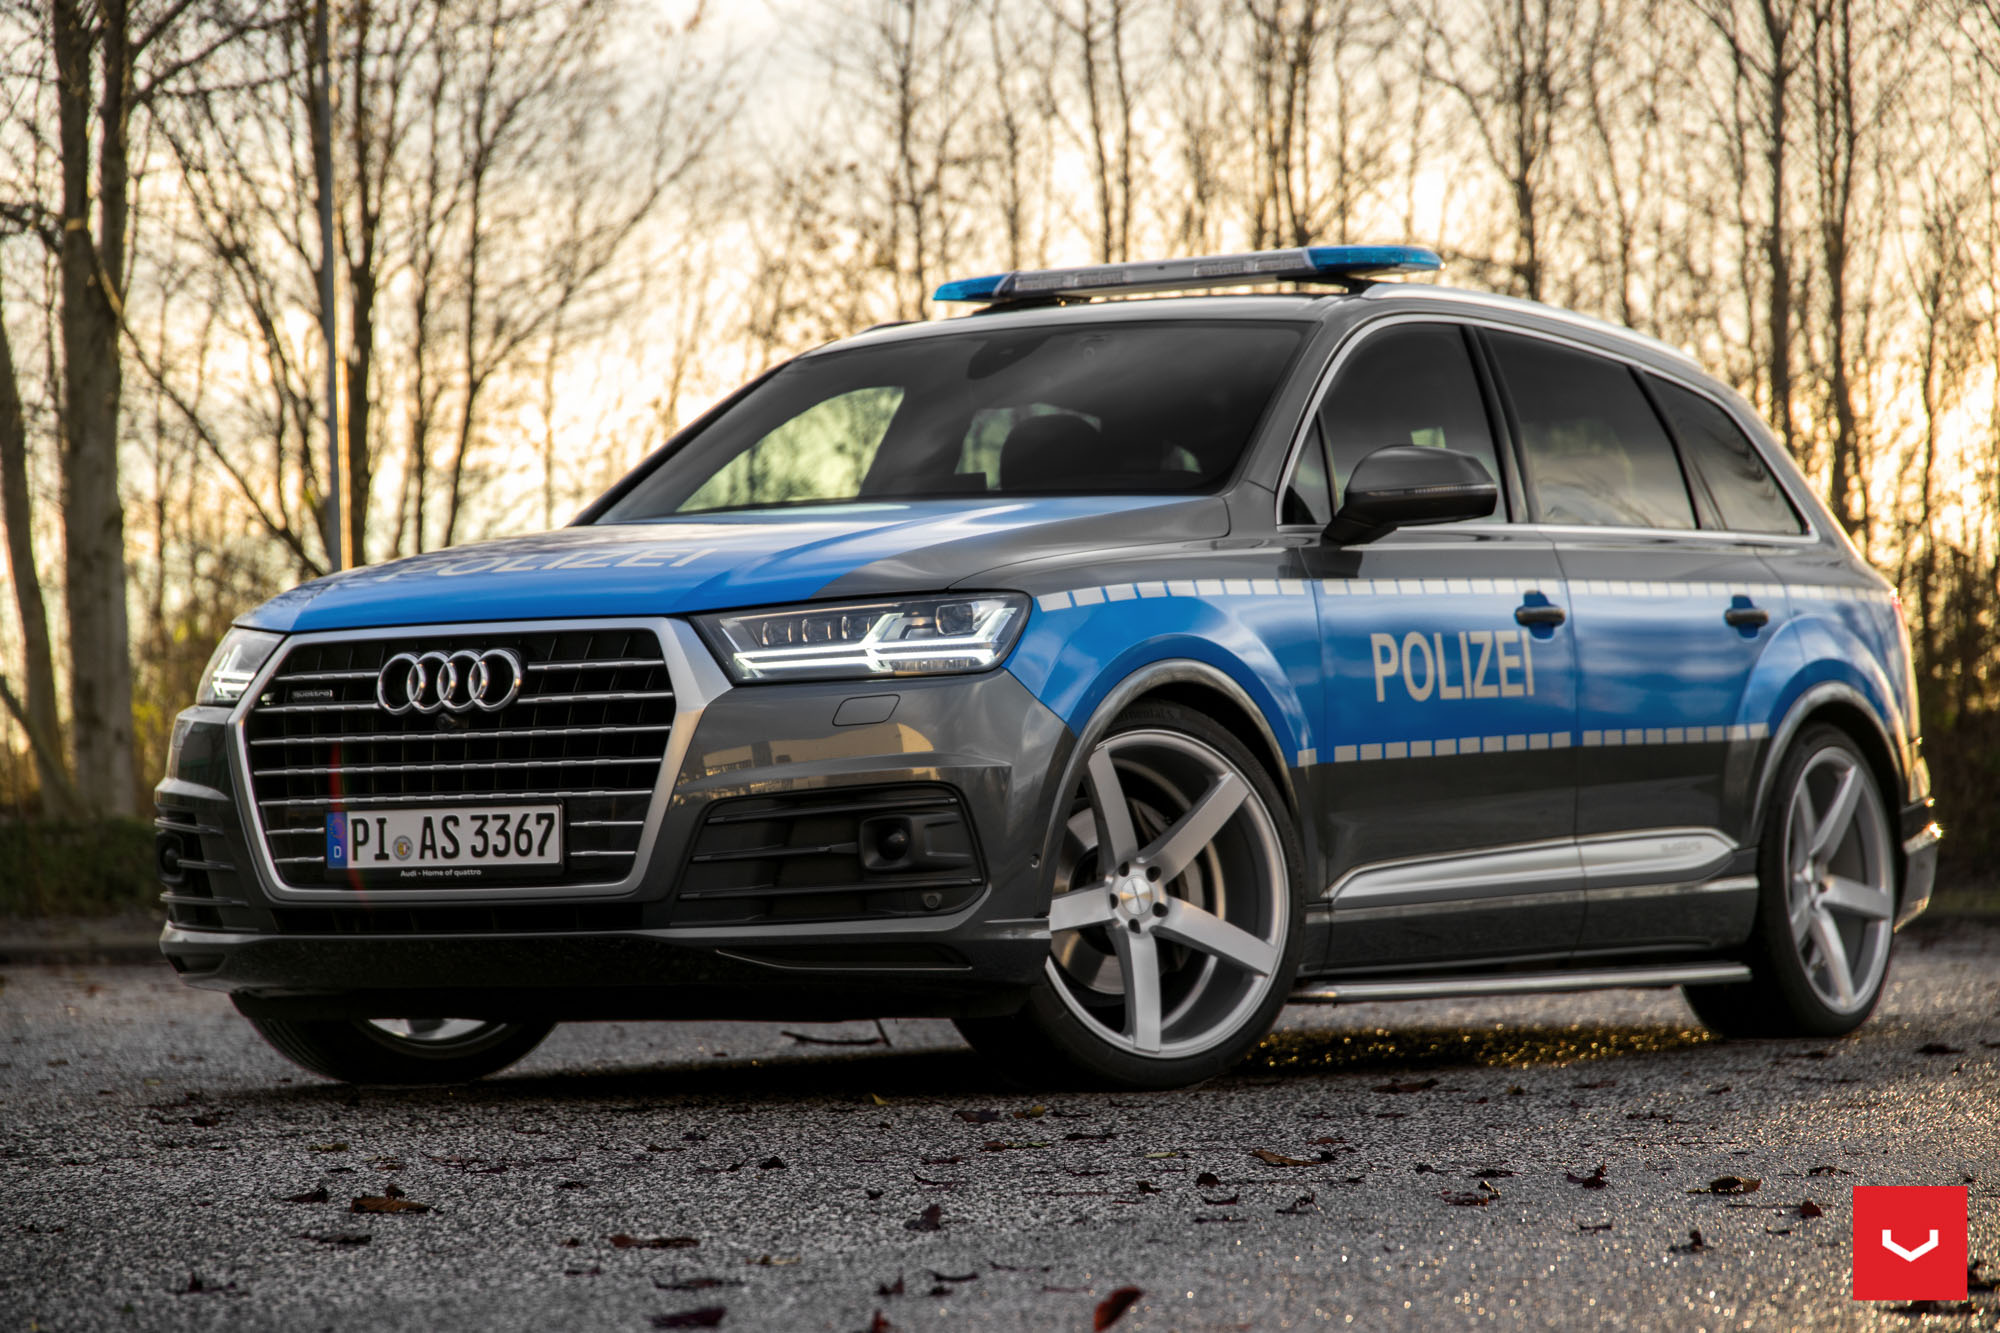 Audi Police Car | www.pixshark.com - Images Galleries With A Bite!